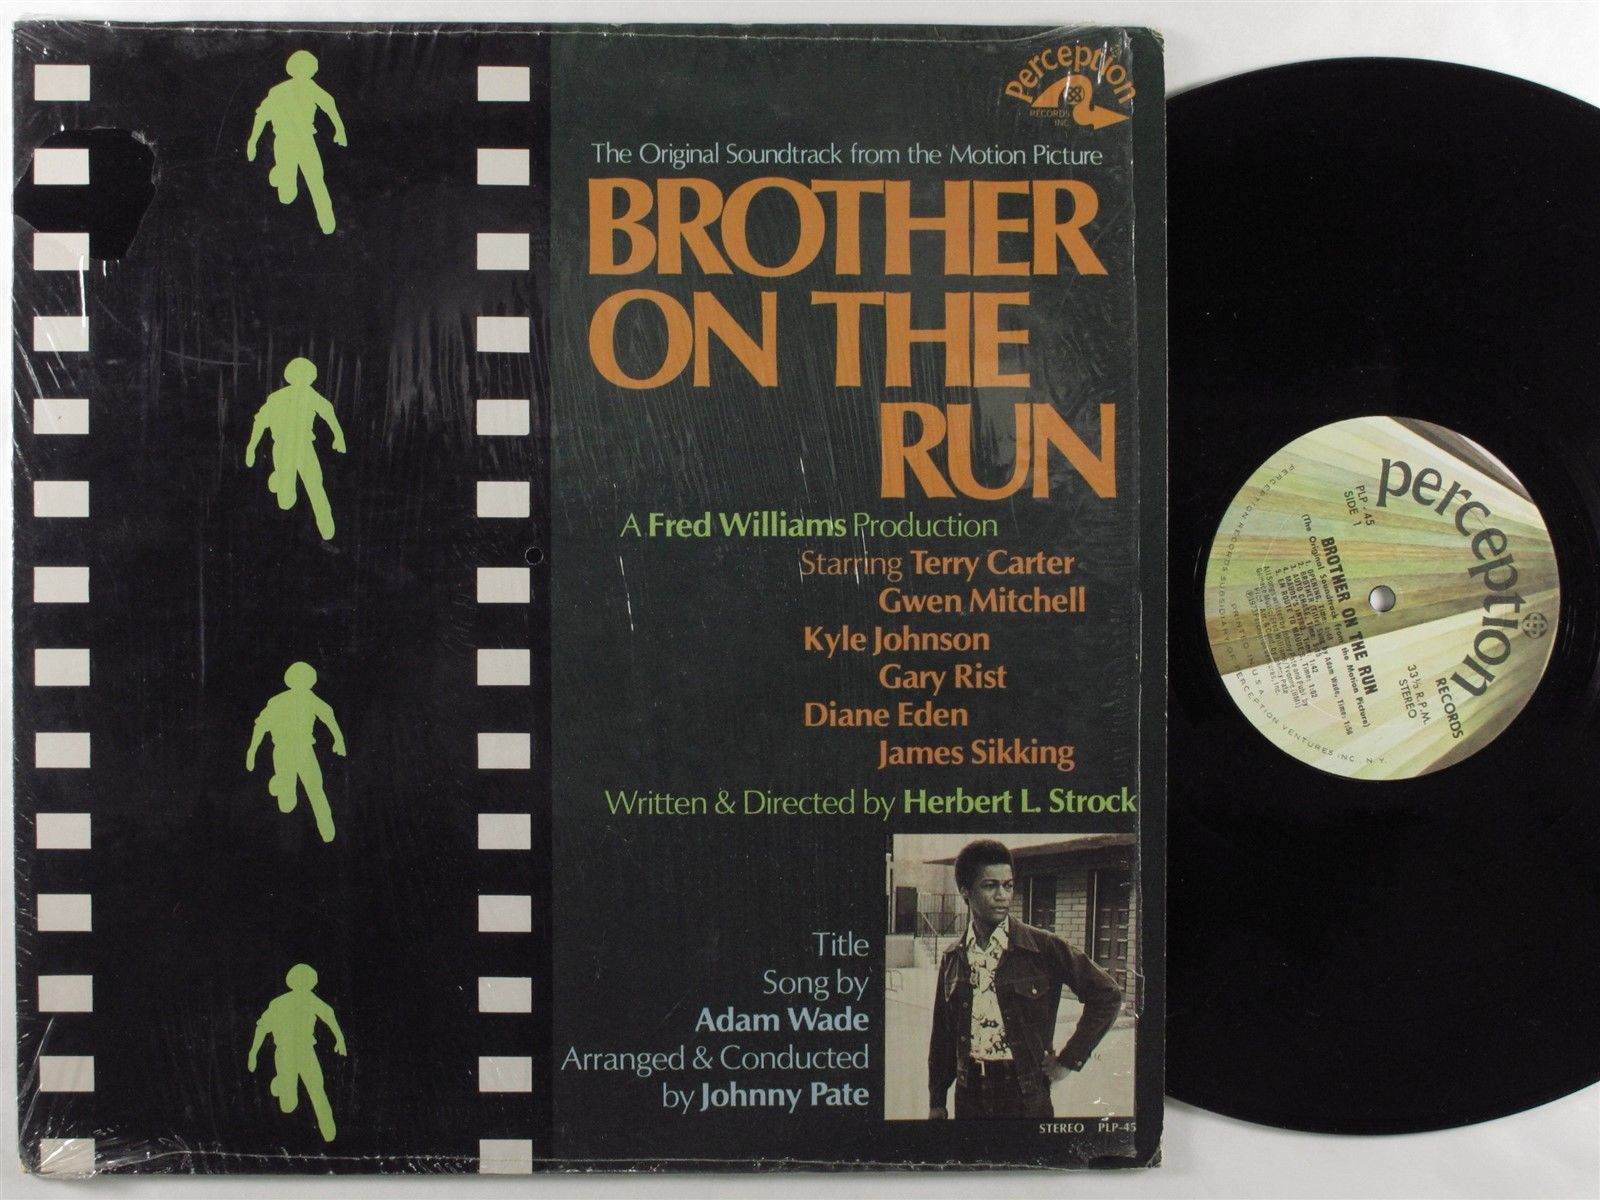 BROTHER ON THE RUN OST Johnny Pate PERCEPTION LP VG++ SHRINK